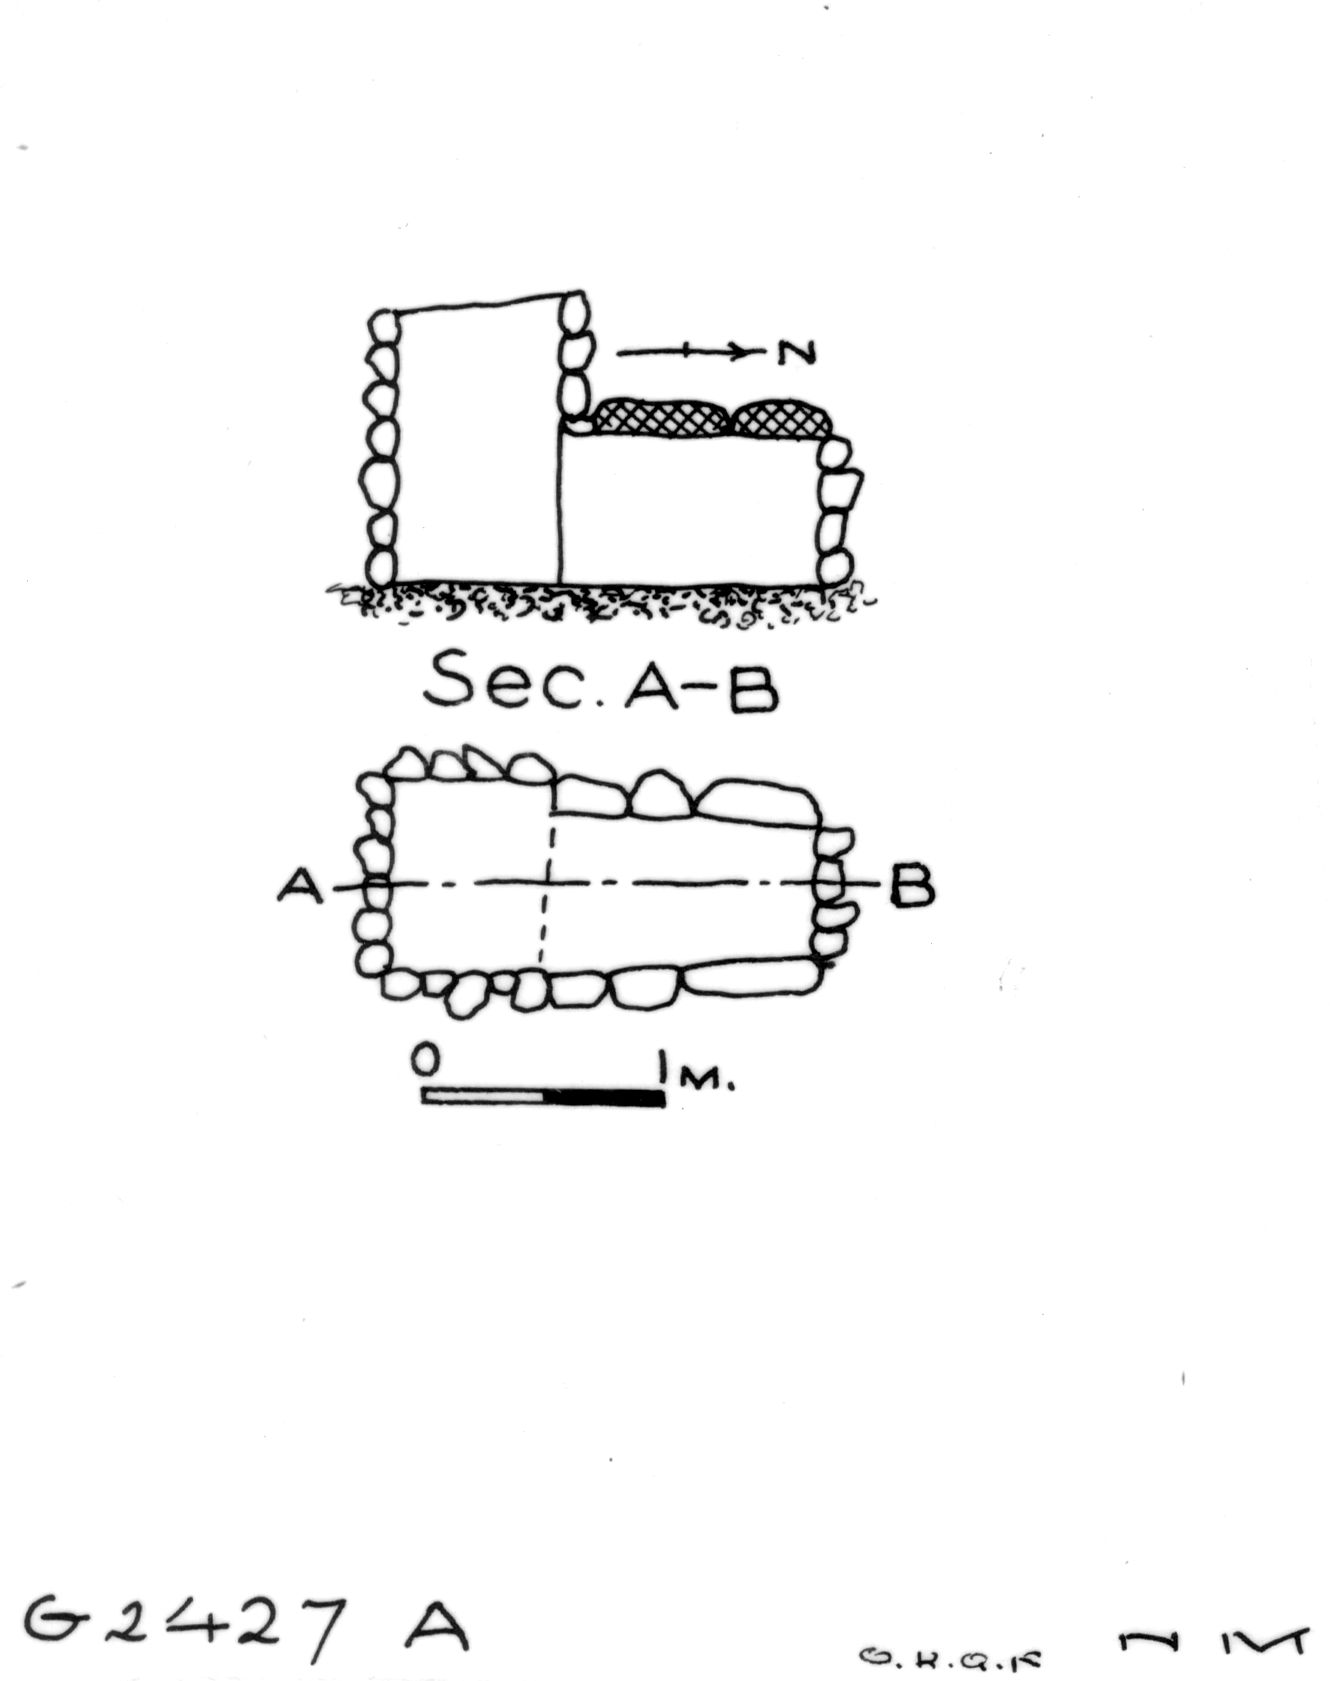 Maps and plans: G 2427, Shaft A